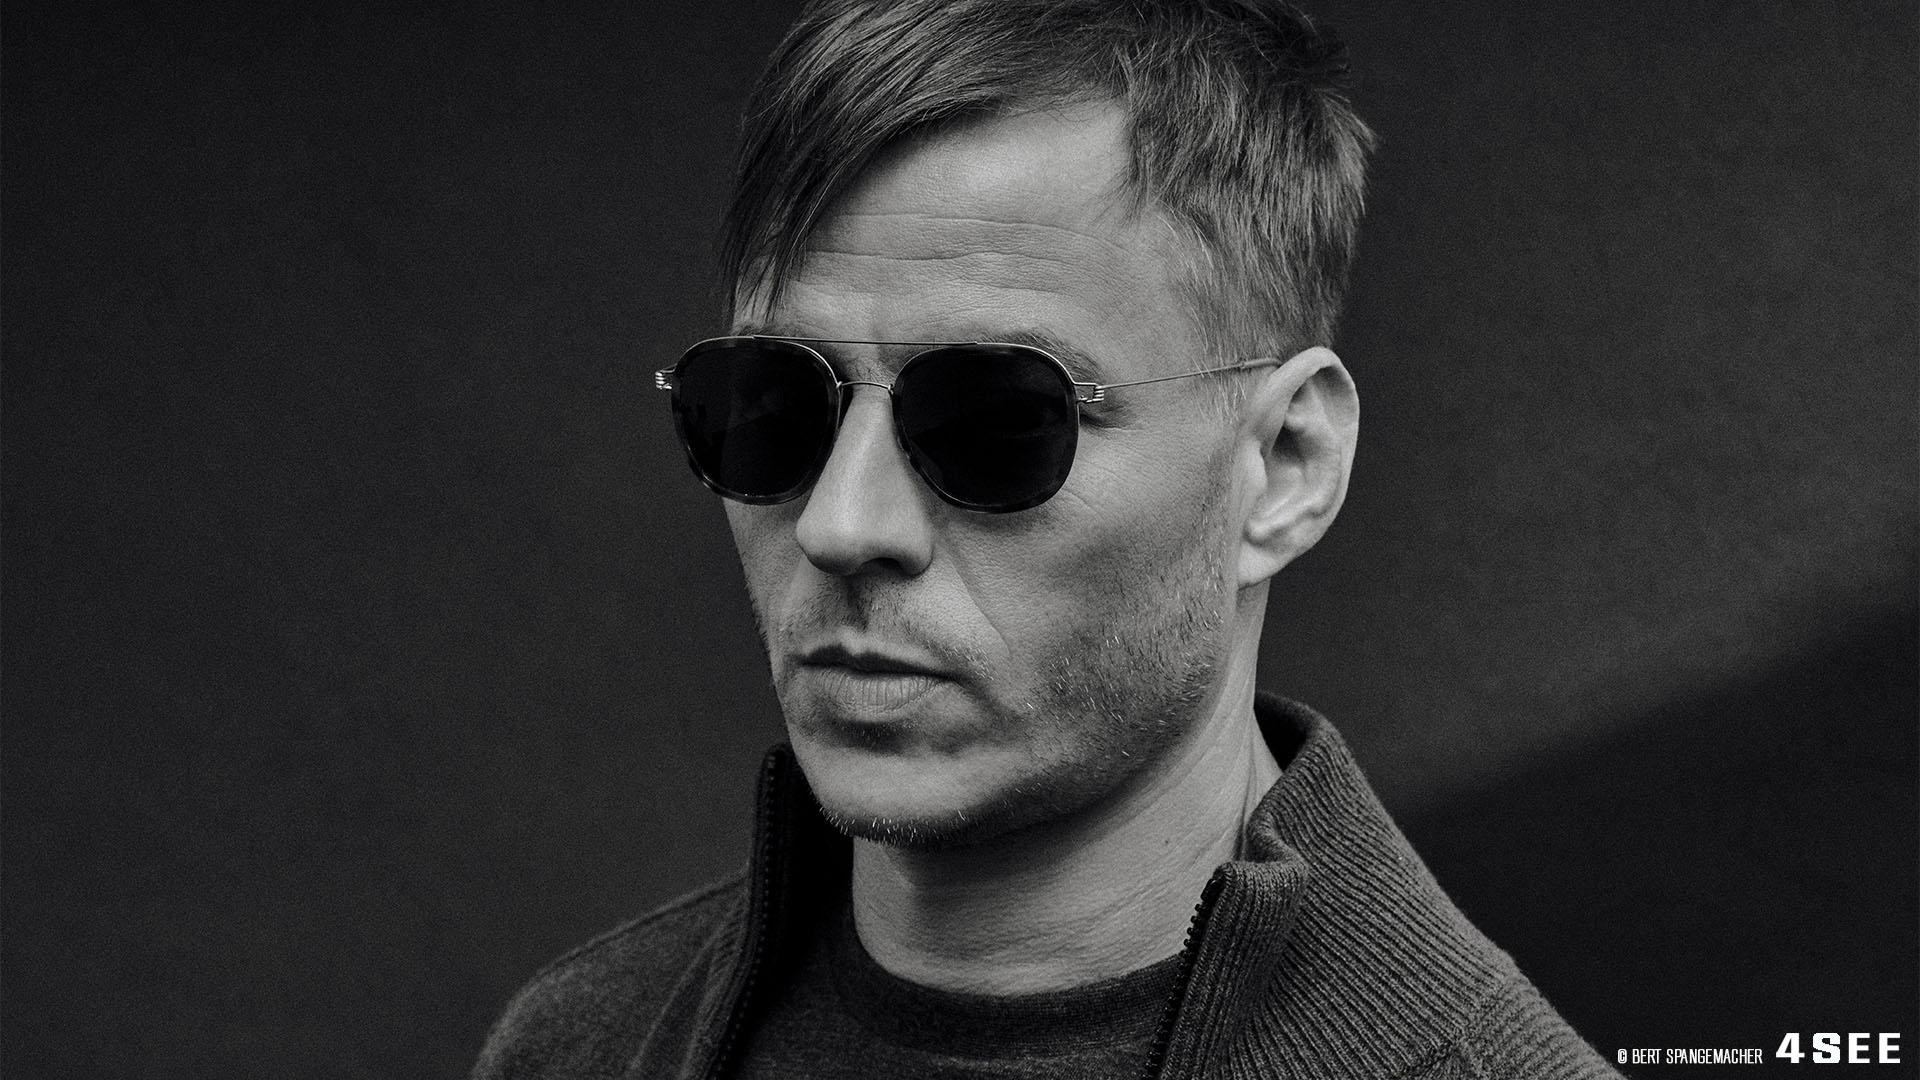 4SEE Interview with Tom Wlaschiha, Photography by Bert Spangemacher, Eyewear by Lindberg